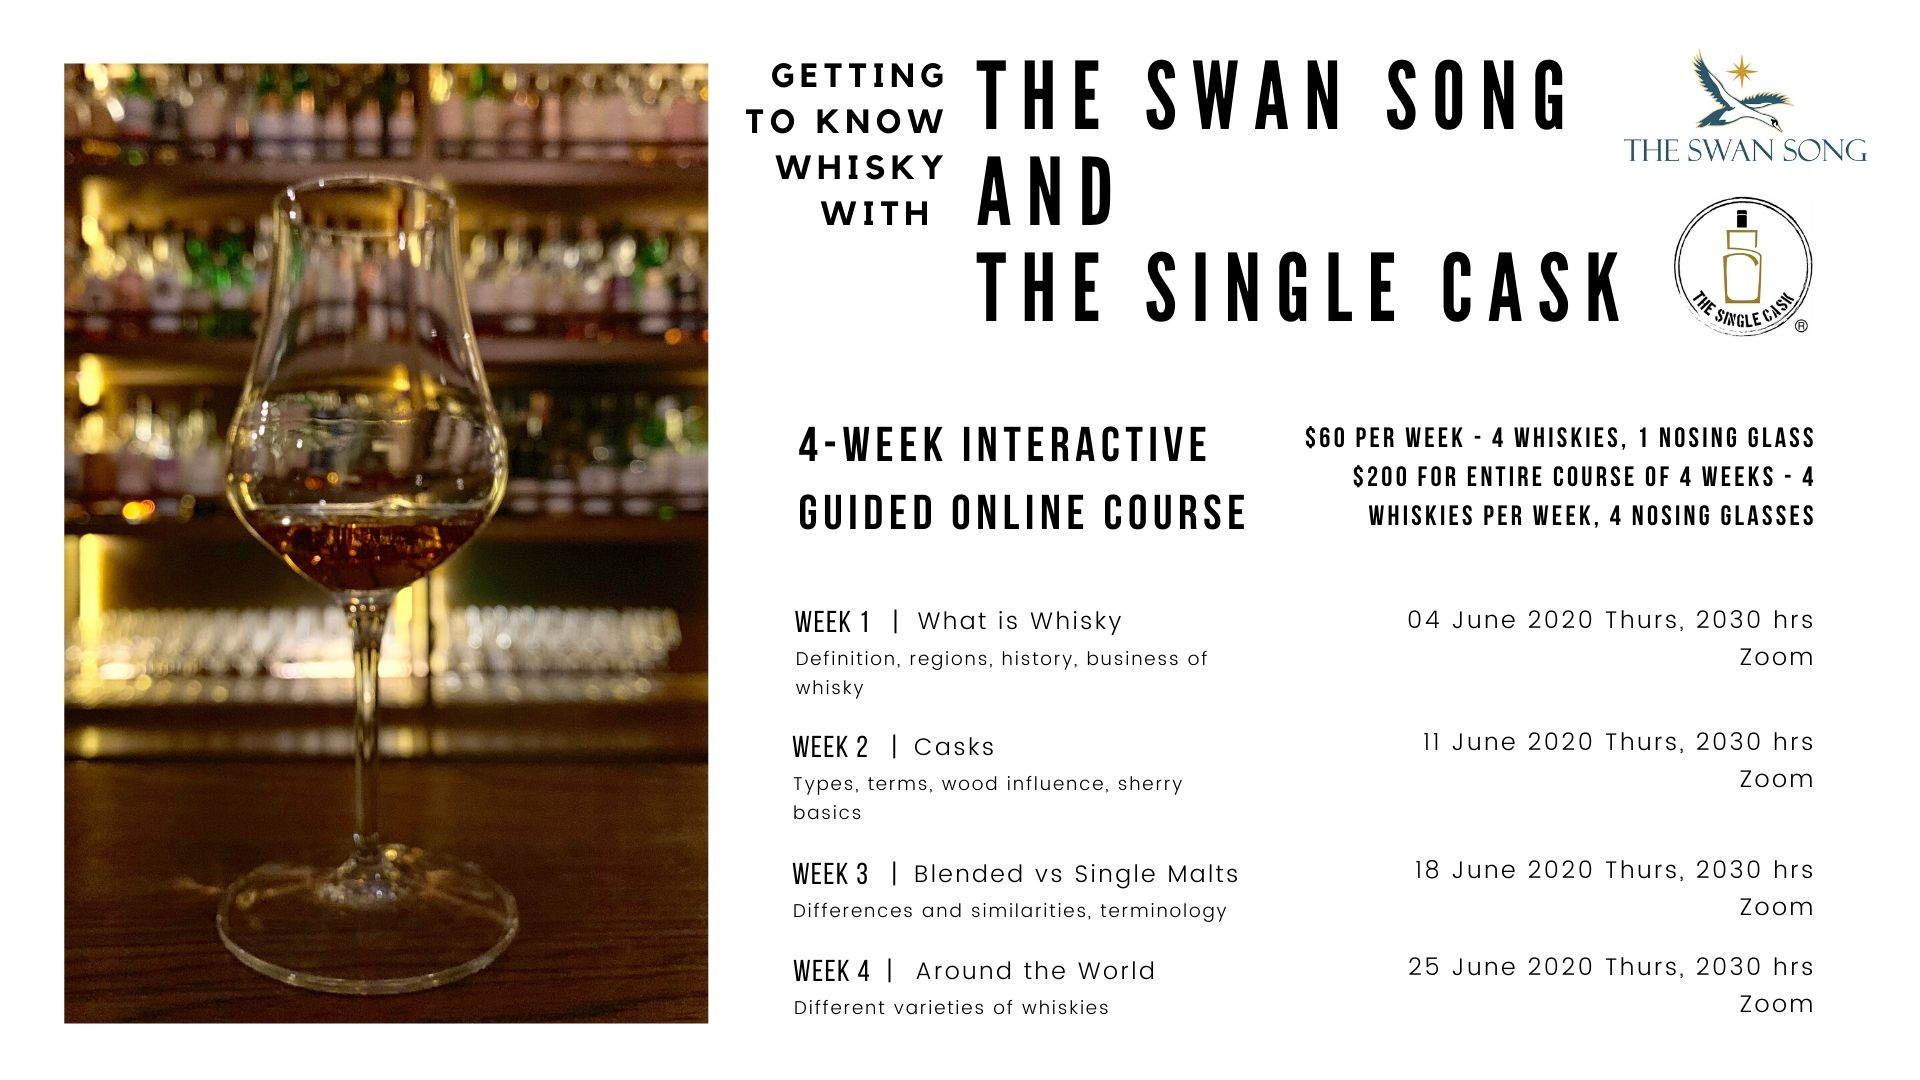 Getting to know Whisky with The Swan Song & The Single Cask